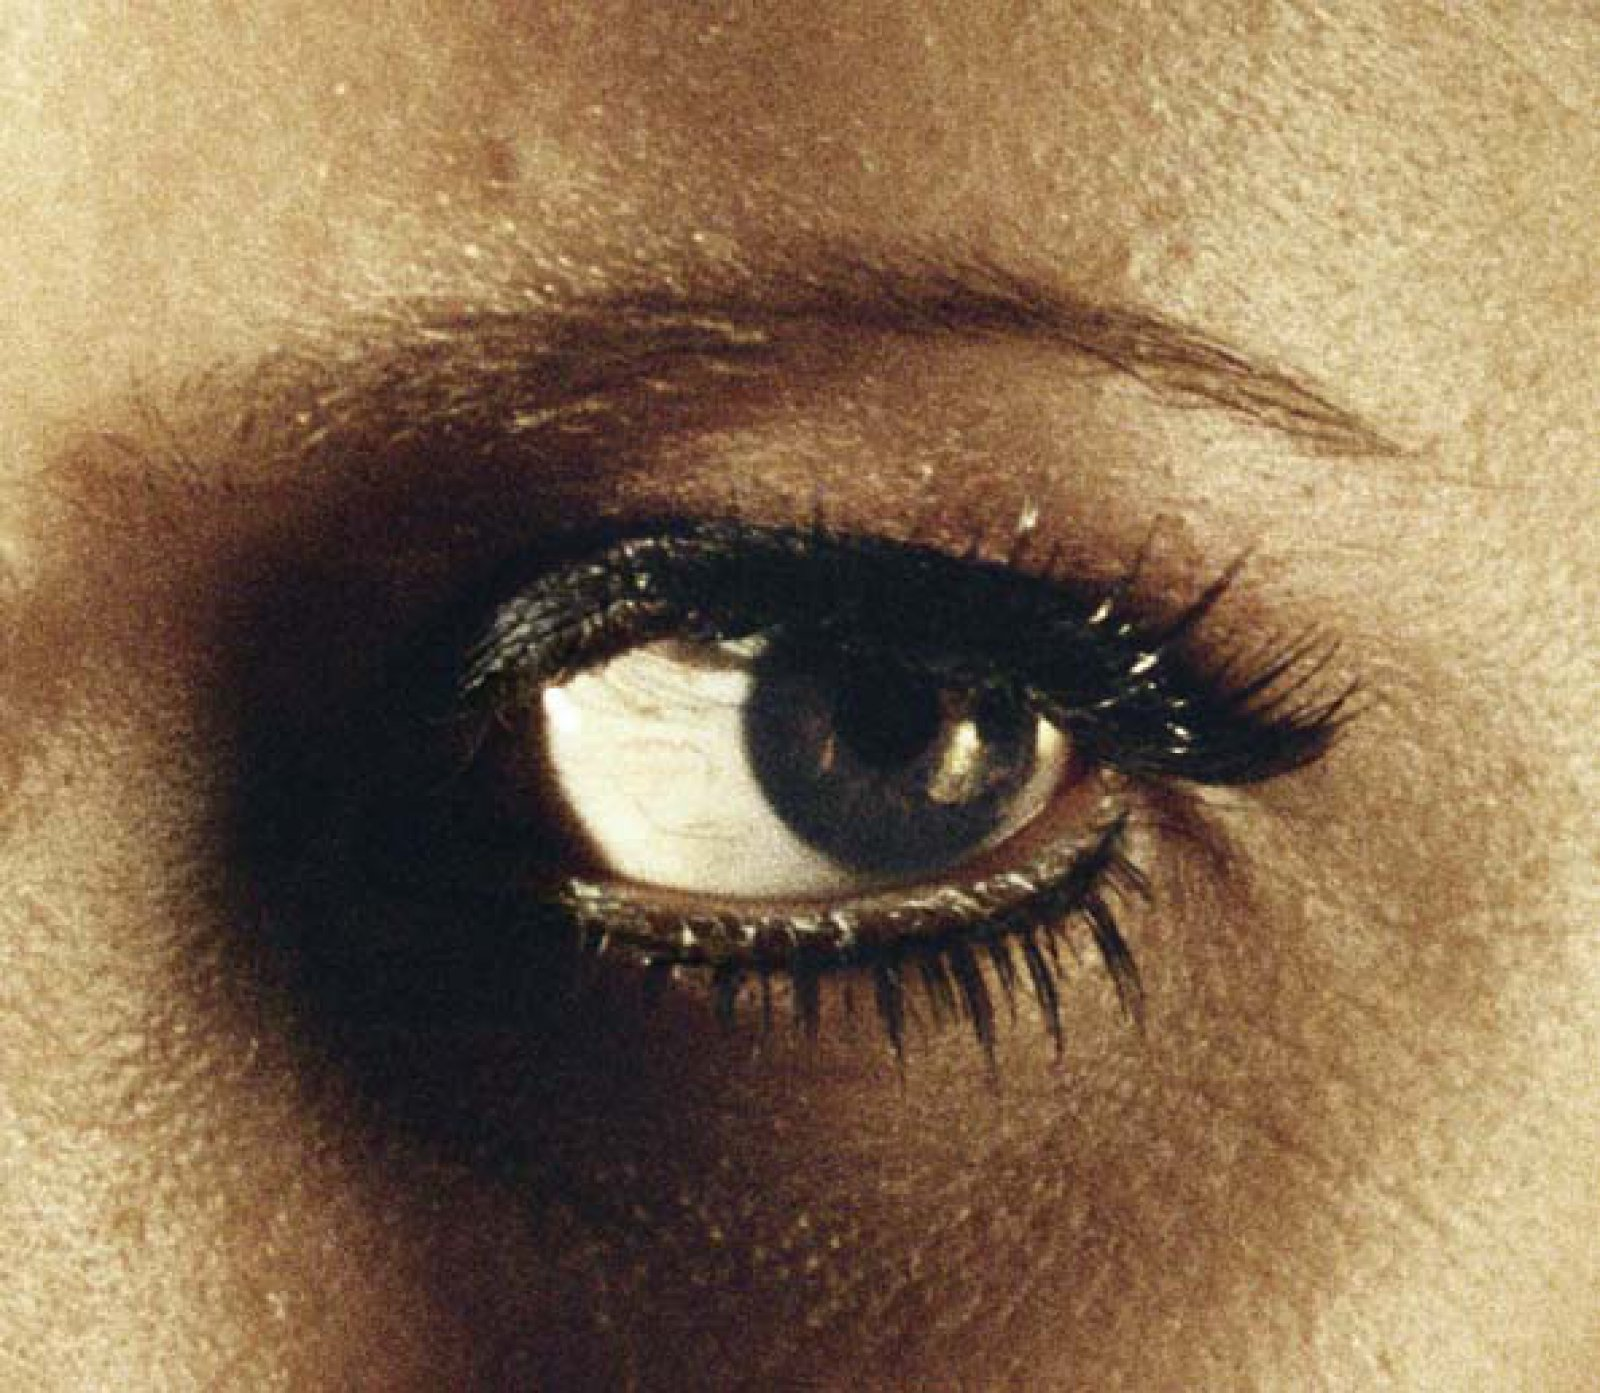 Eye #2 (Boulder), 2012 © Alex Prager, Courtesy of the Artist, Michael Hoppen Gallery and Yancey Richardson Gallery